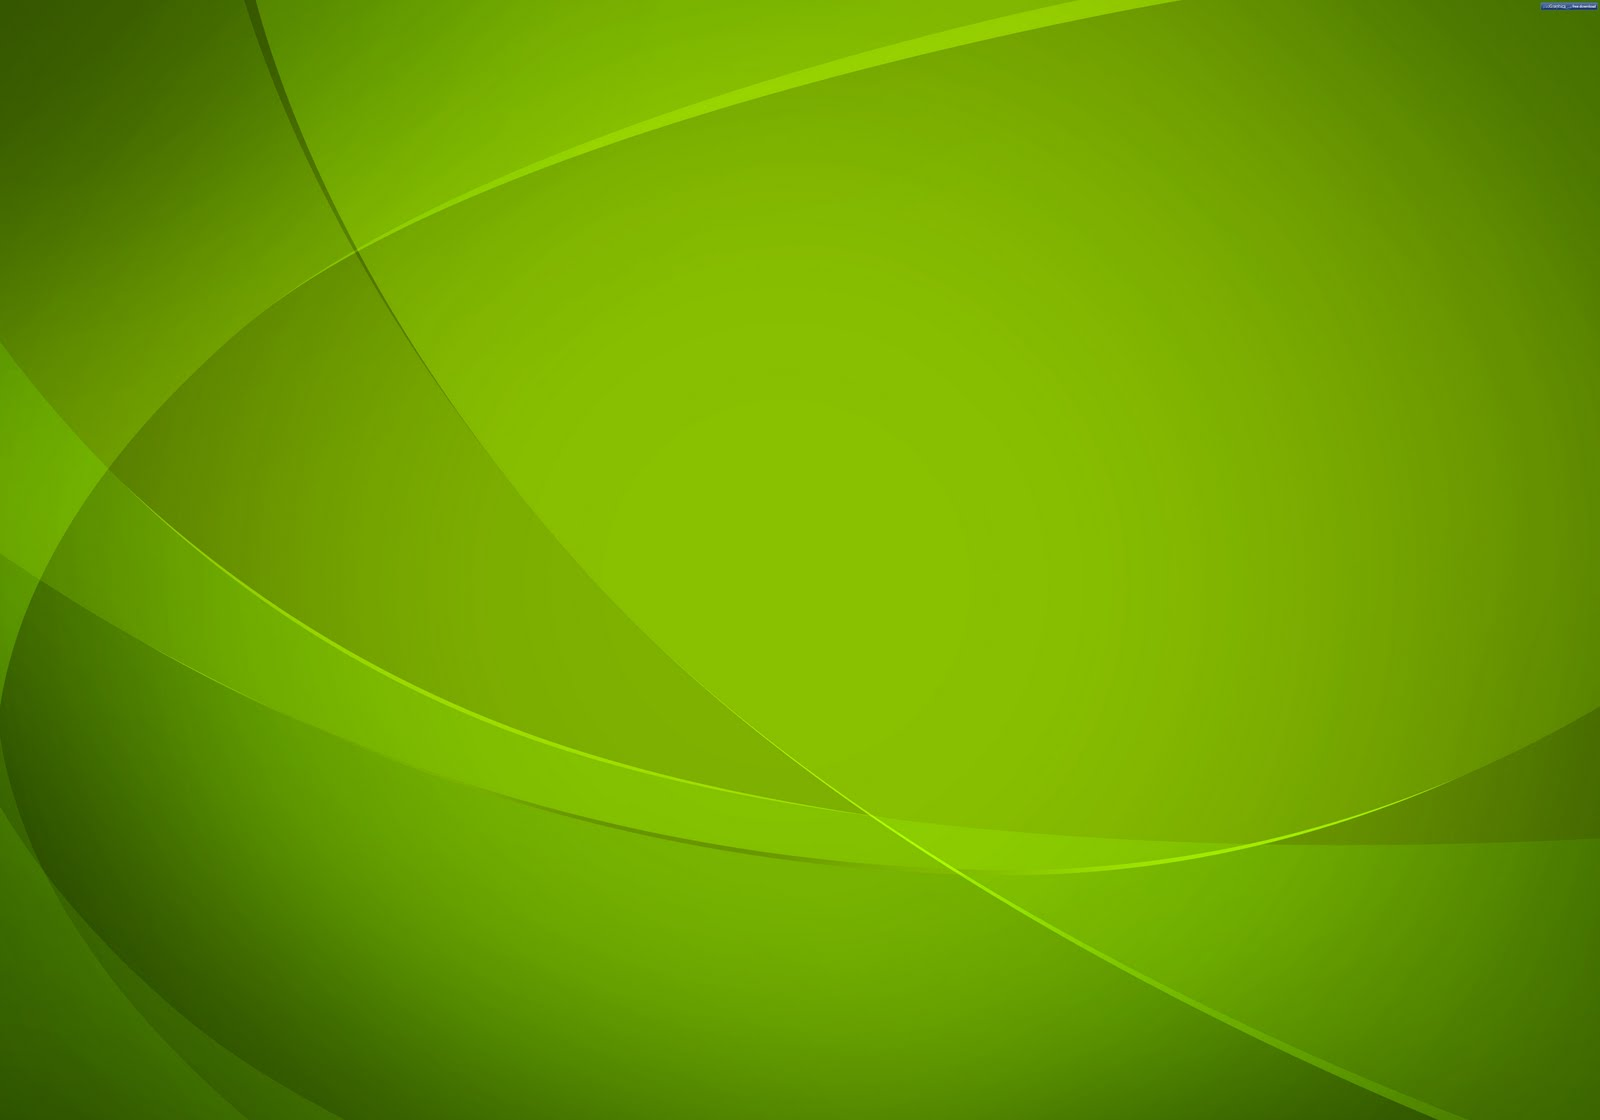 http://3.bp.blogspot.com/-4Co3S0ePJrc/UA99GHjFegI/AAAAAAAAB20/GWbRO-ODkBI/s1600/green-abstract-background.jpg